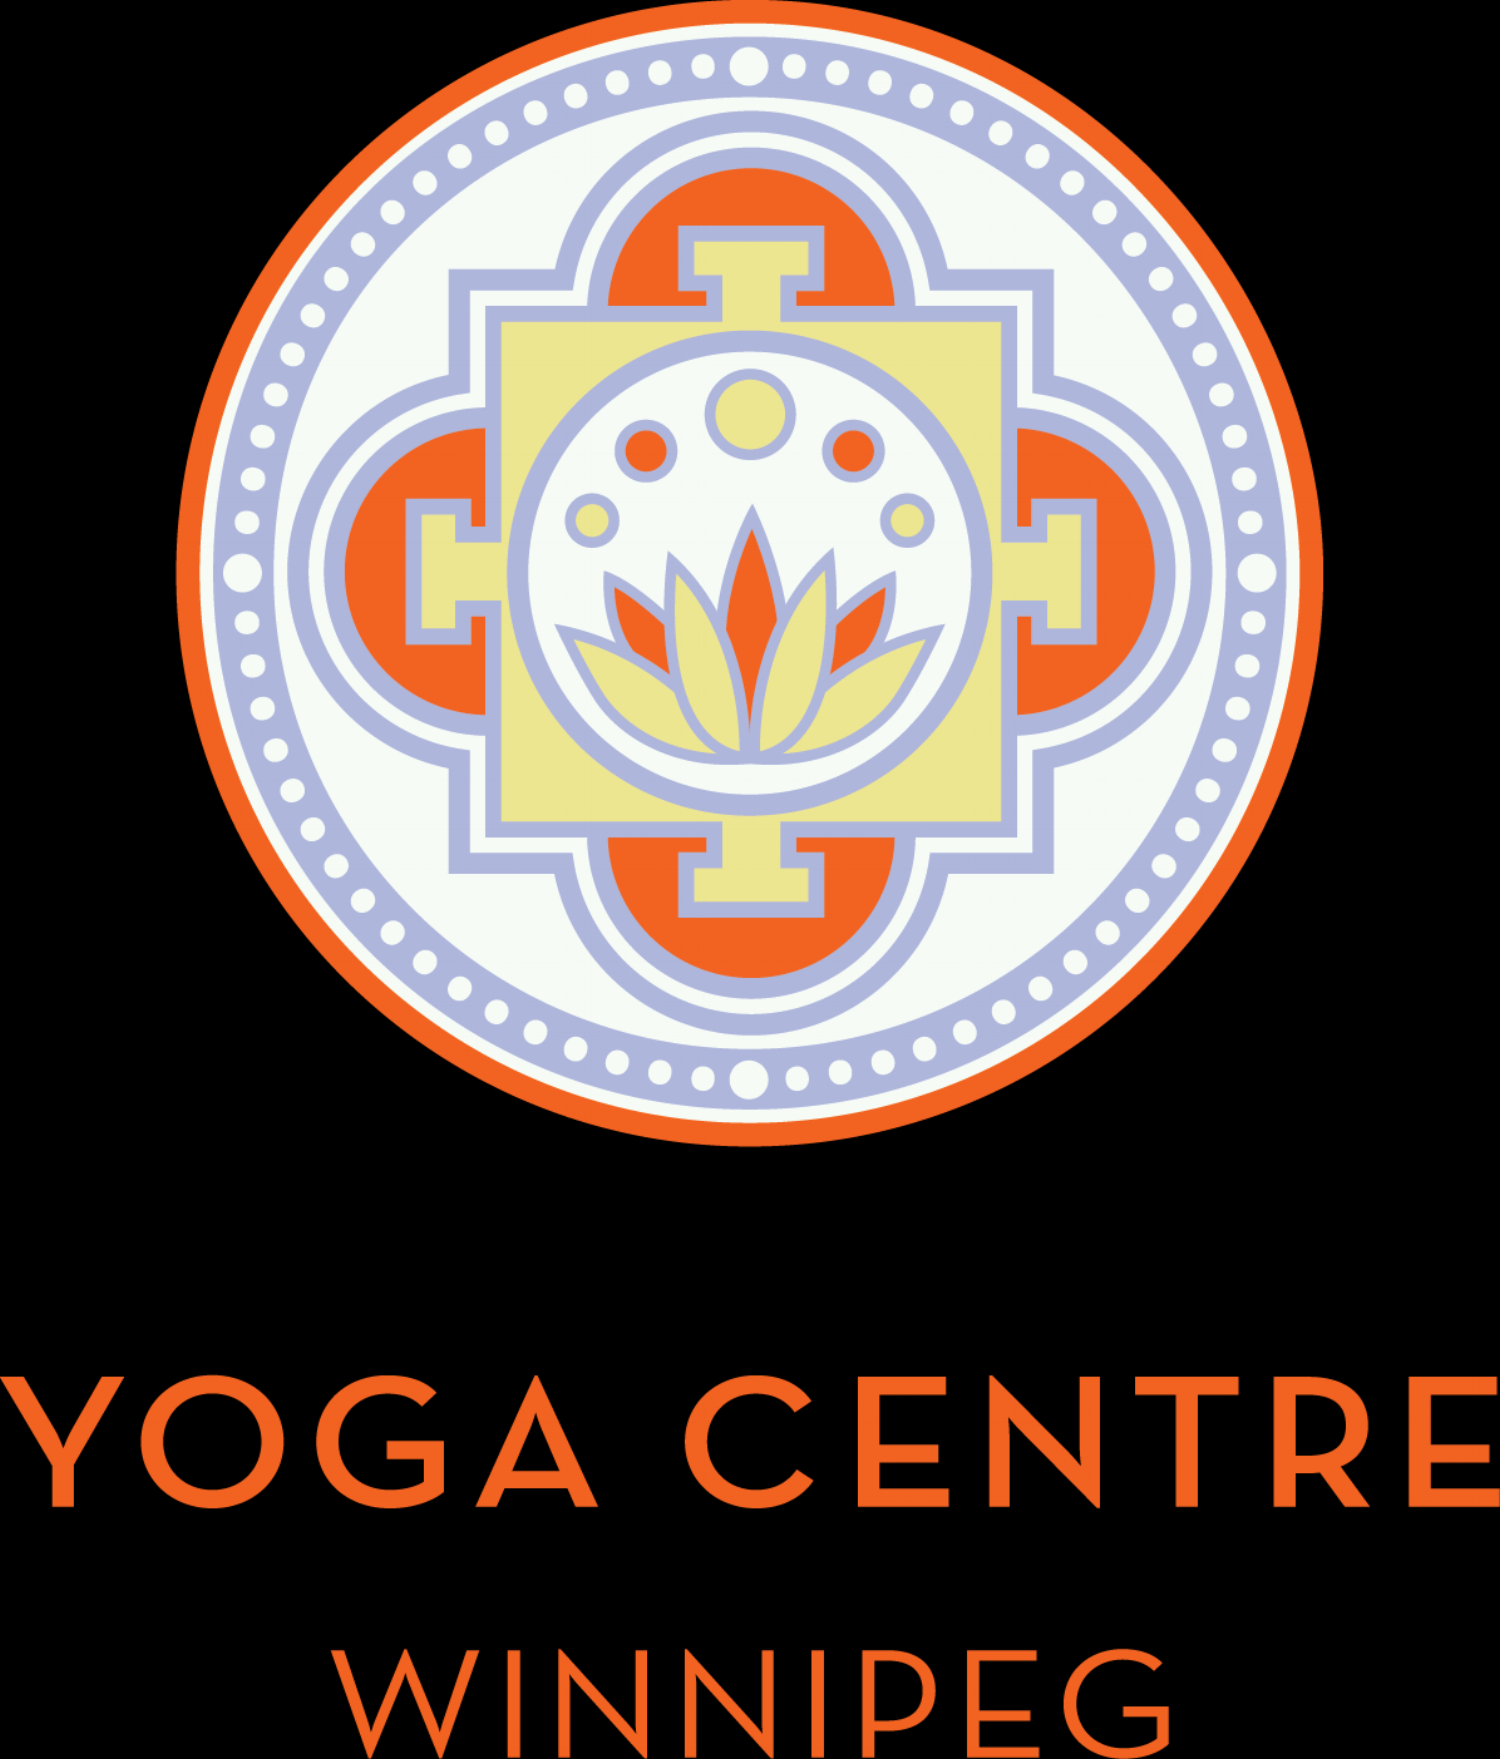 Yoga Centre Winnipeg